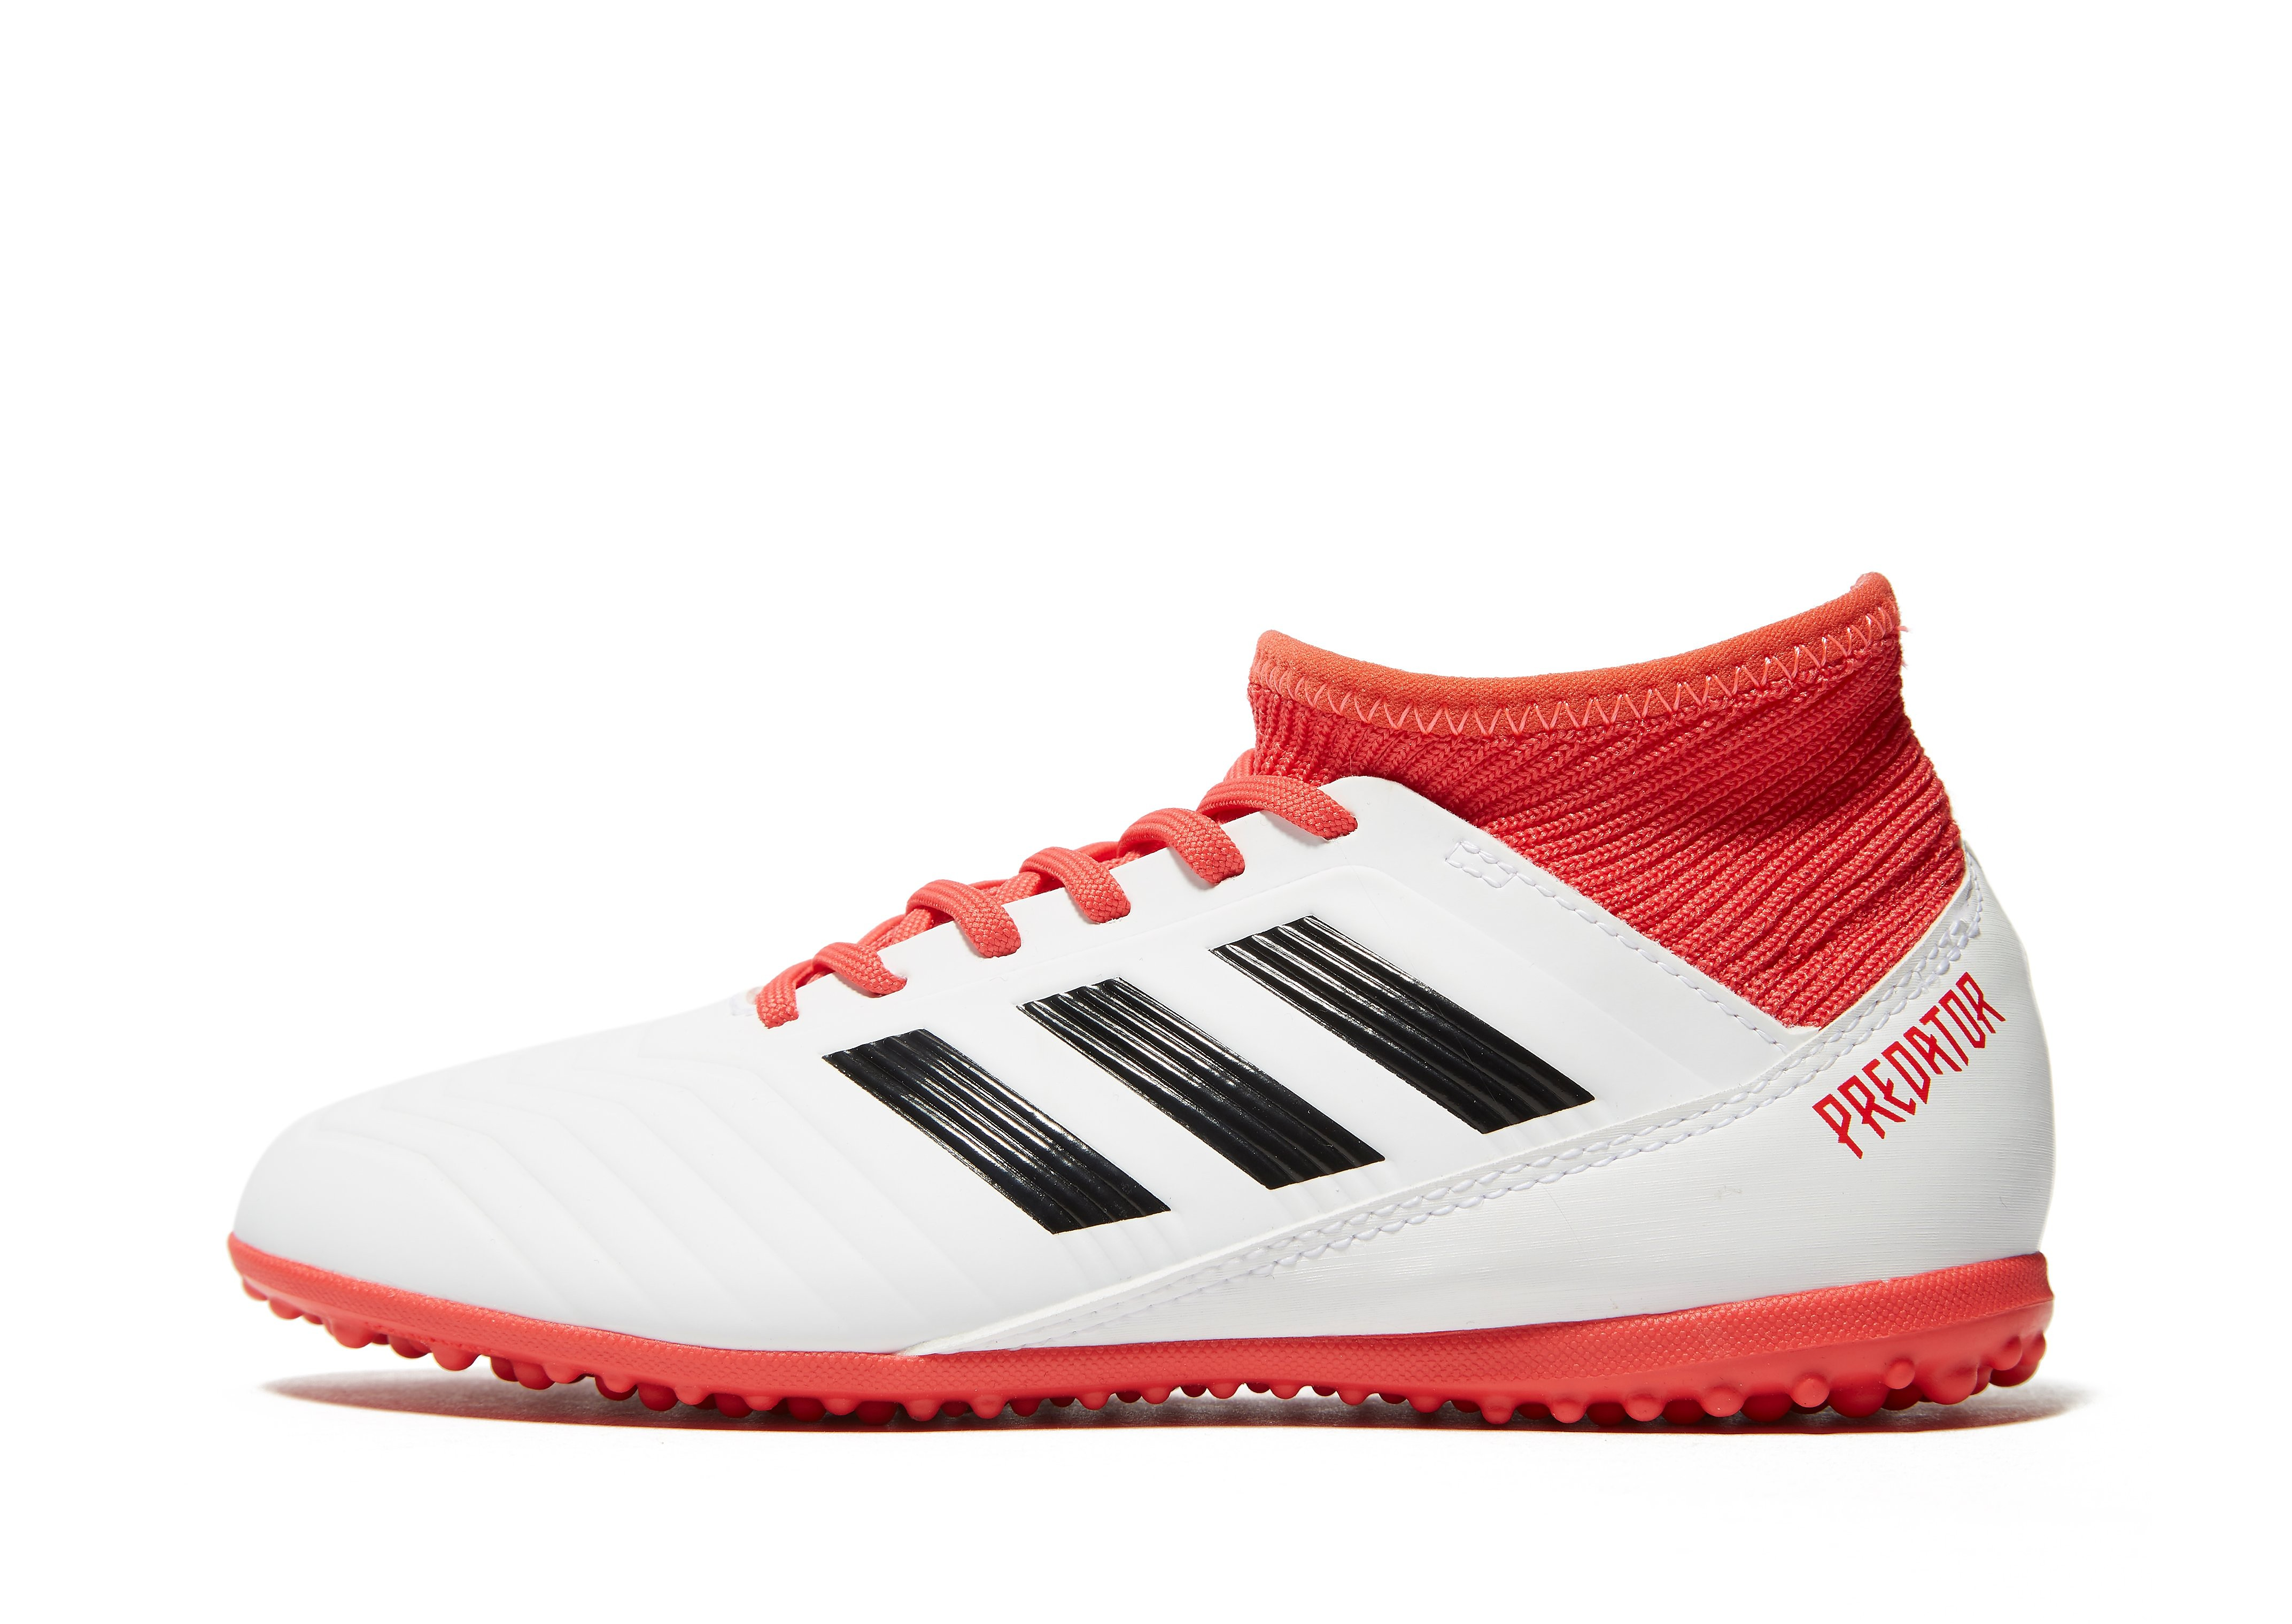 adidas Cold Blooded Predator 18.3 TF Children